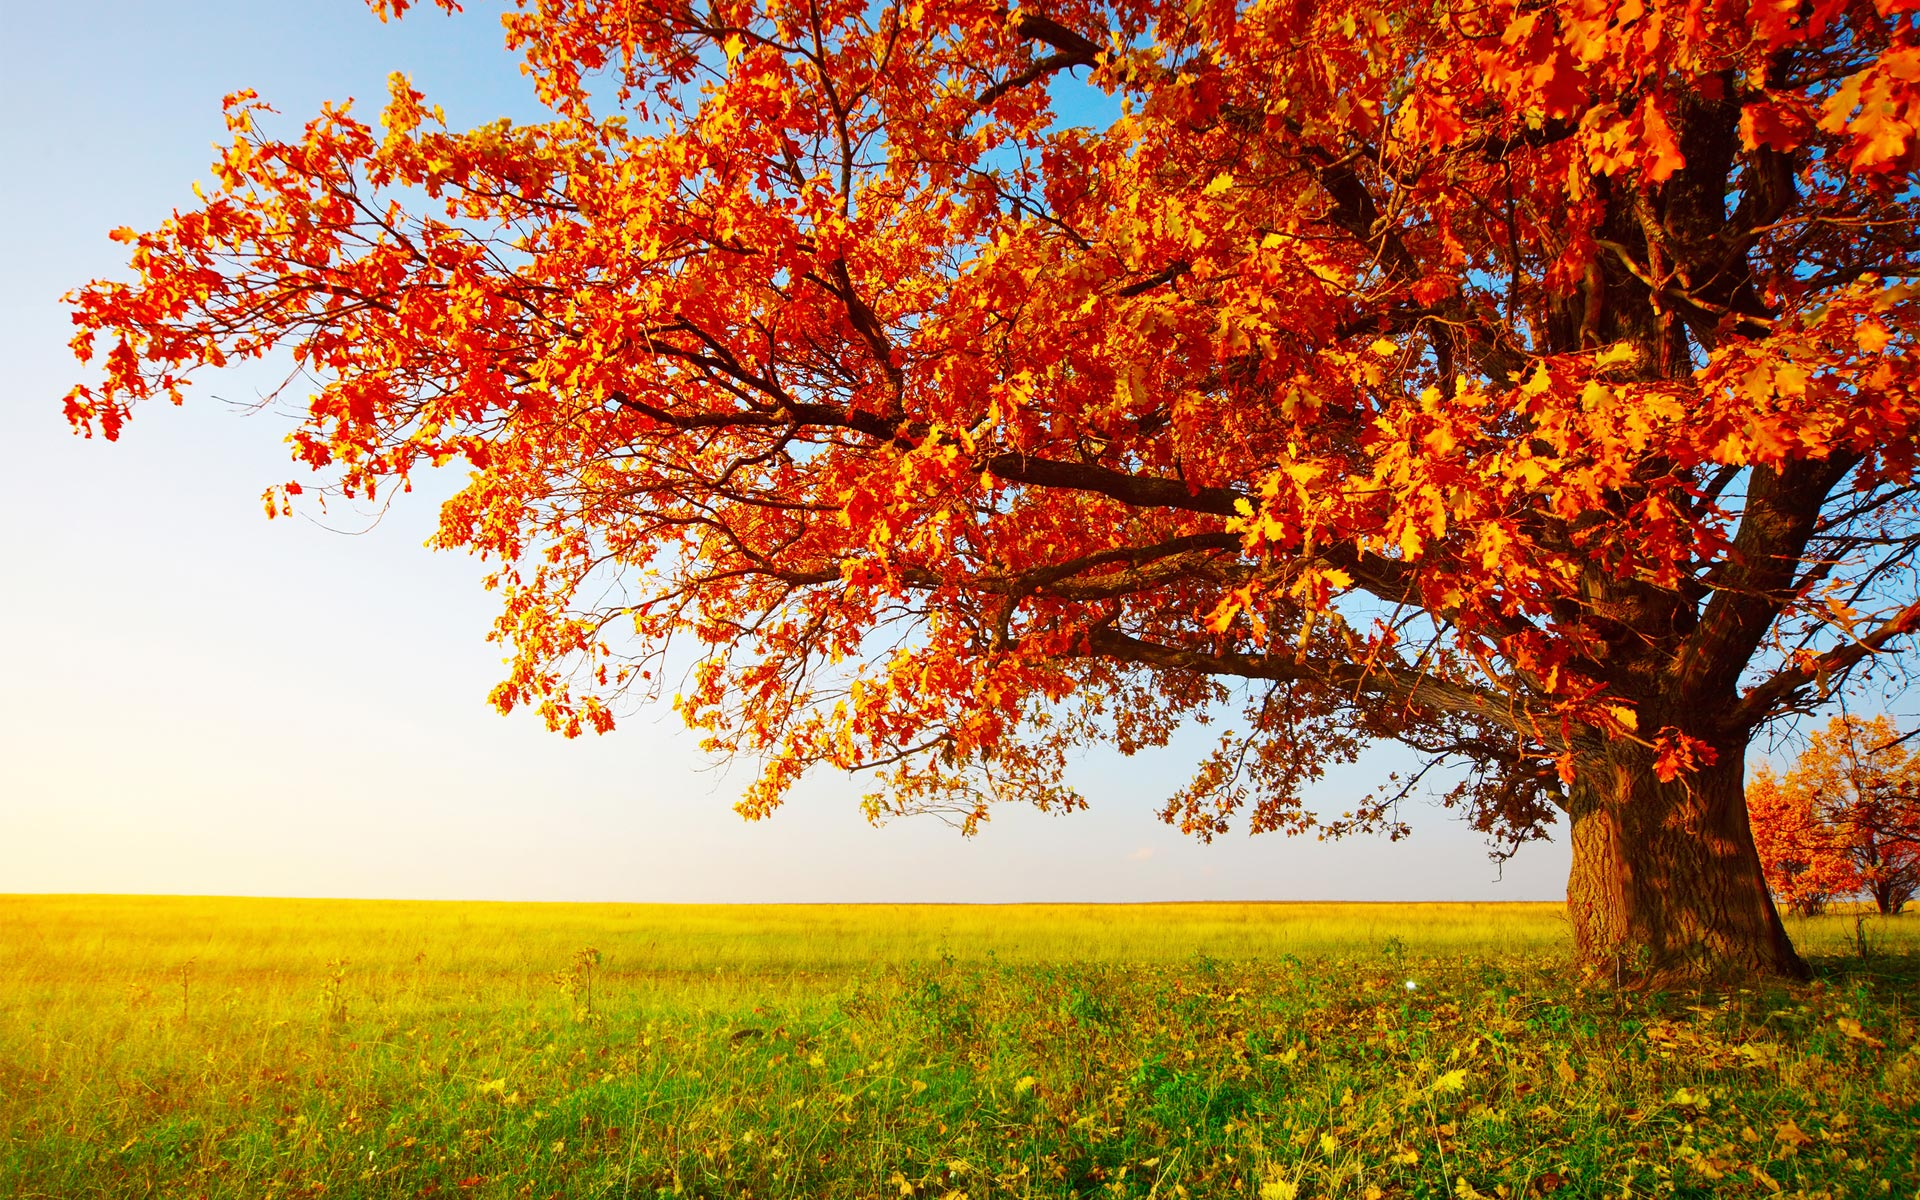 Autumn Trees Photography Hd Images 3 HD Wallpapers